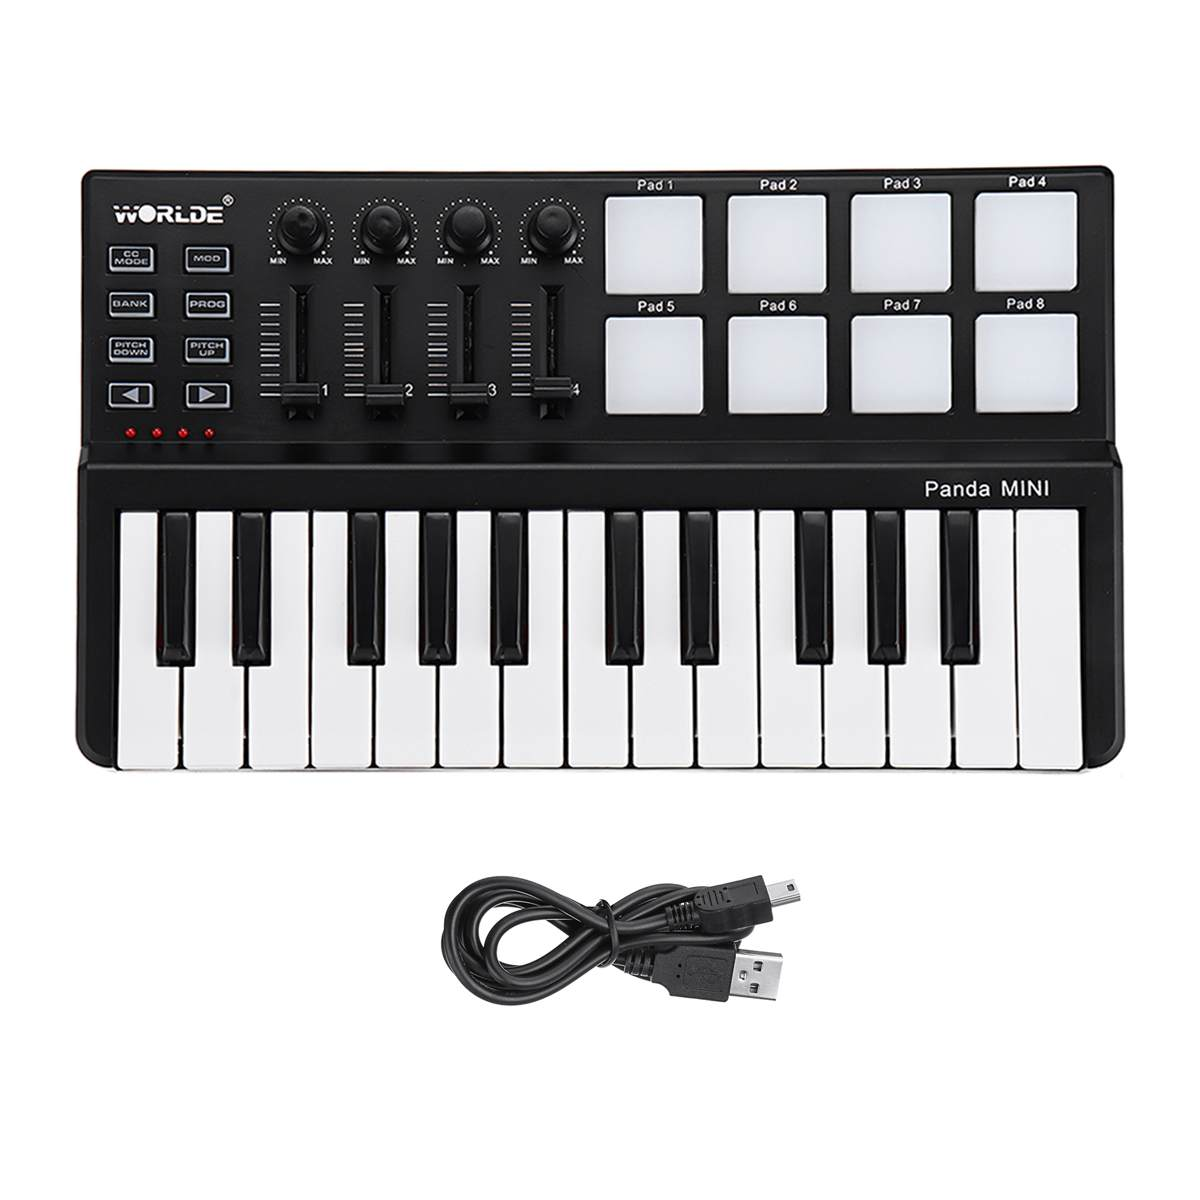 Worlde Panda mini Portable Mini 25-Key USB Keyboard and Drum Pad MIDI Controller Professional Musical Instruments Black Color